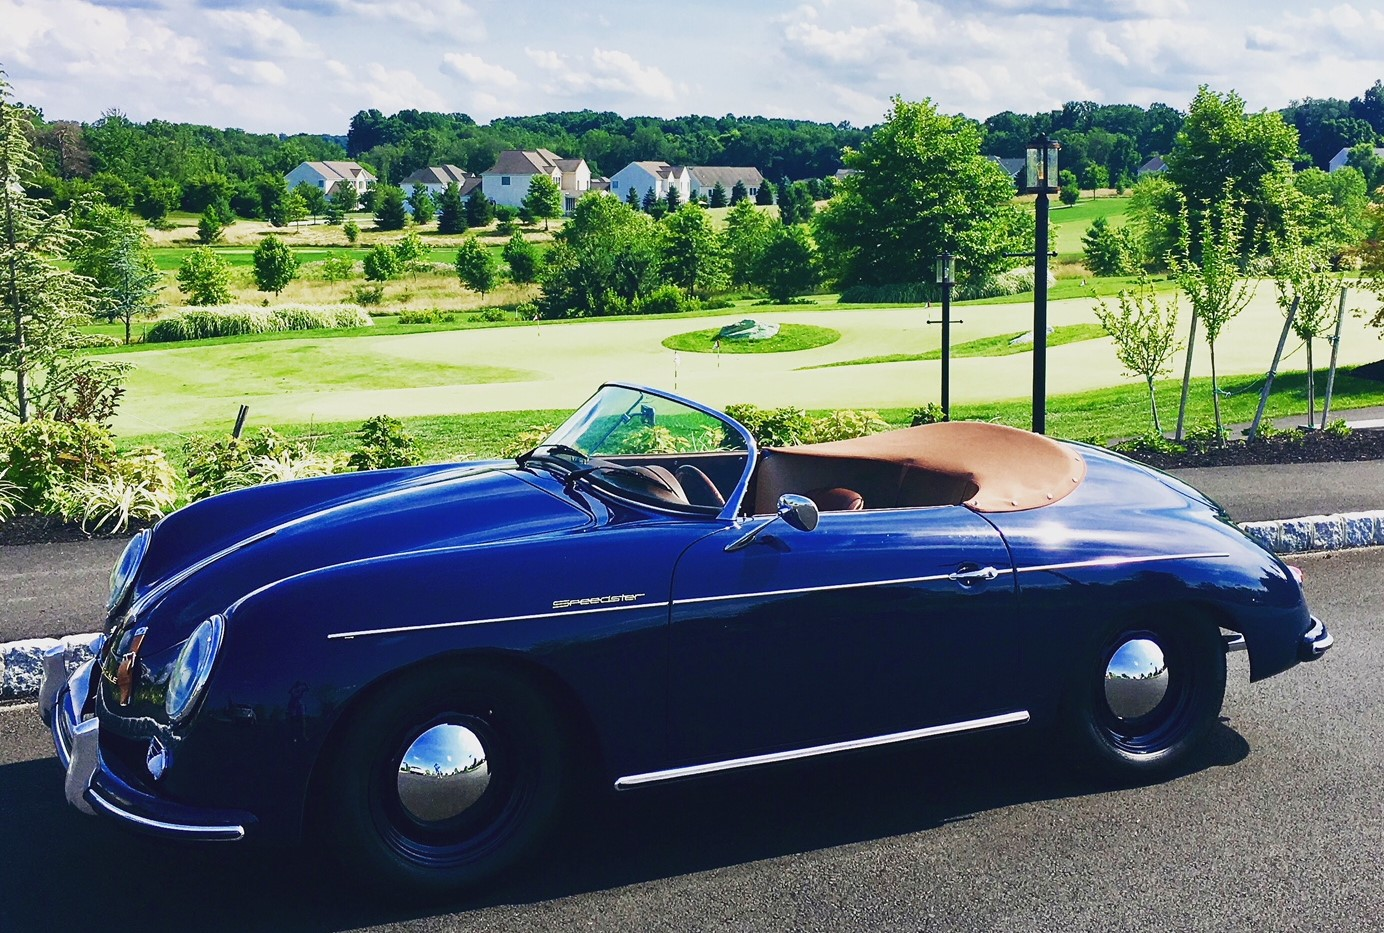 Wright Agency Car of the Week: Replica of a 1957 Porsche 356 Speedster